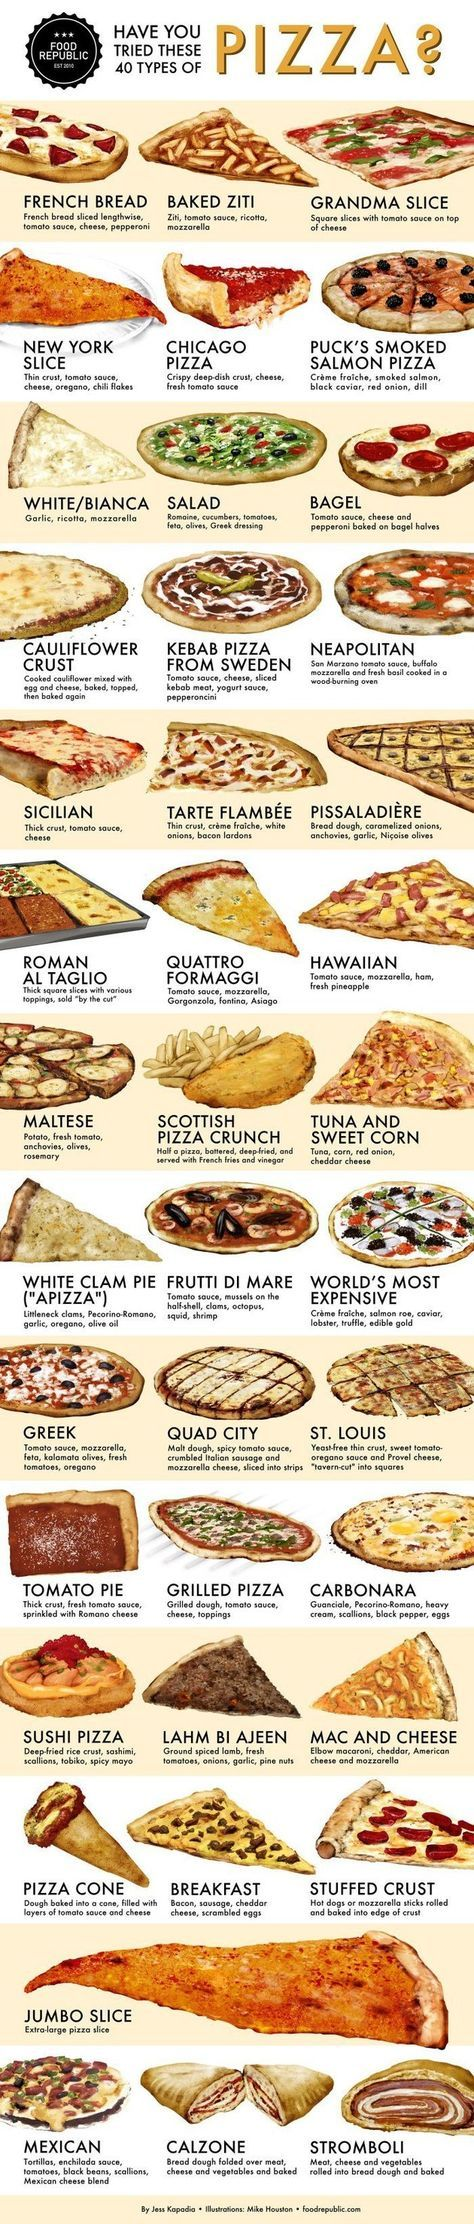 40 truly delicious ways to eat pizza, gonna keep these for my references #pizzalover